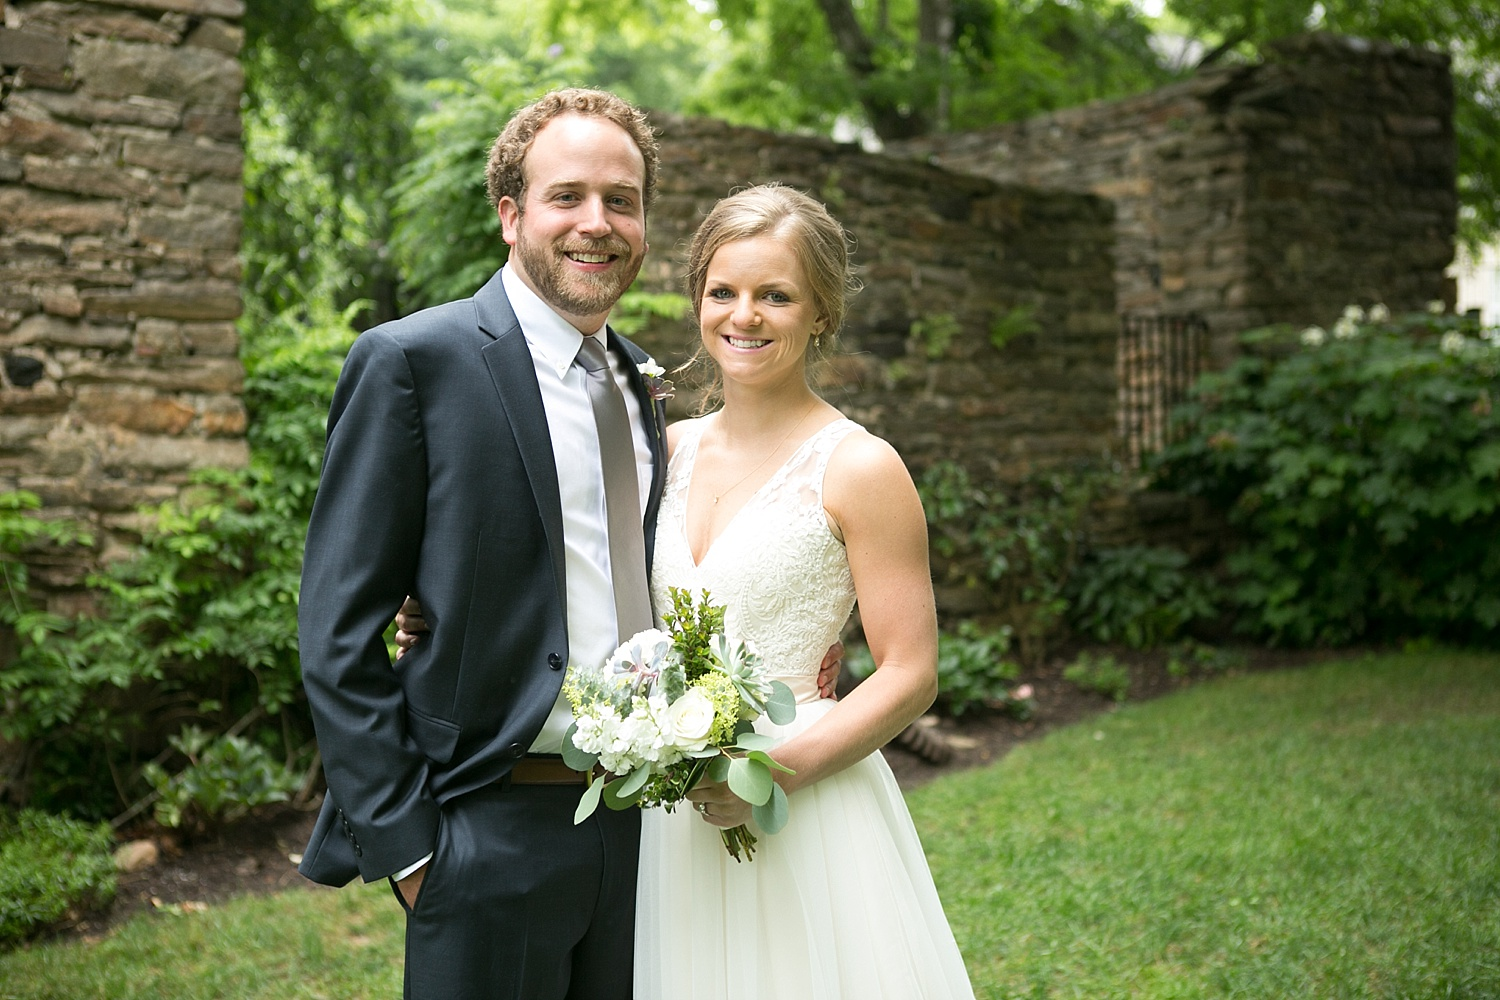 Richmond VA Wedding Photographer